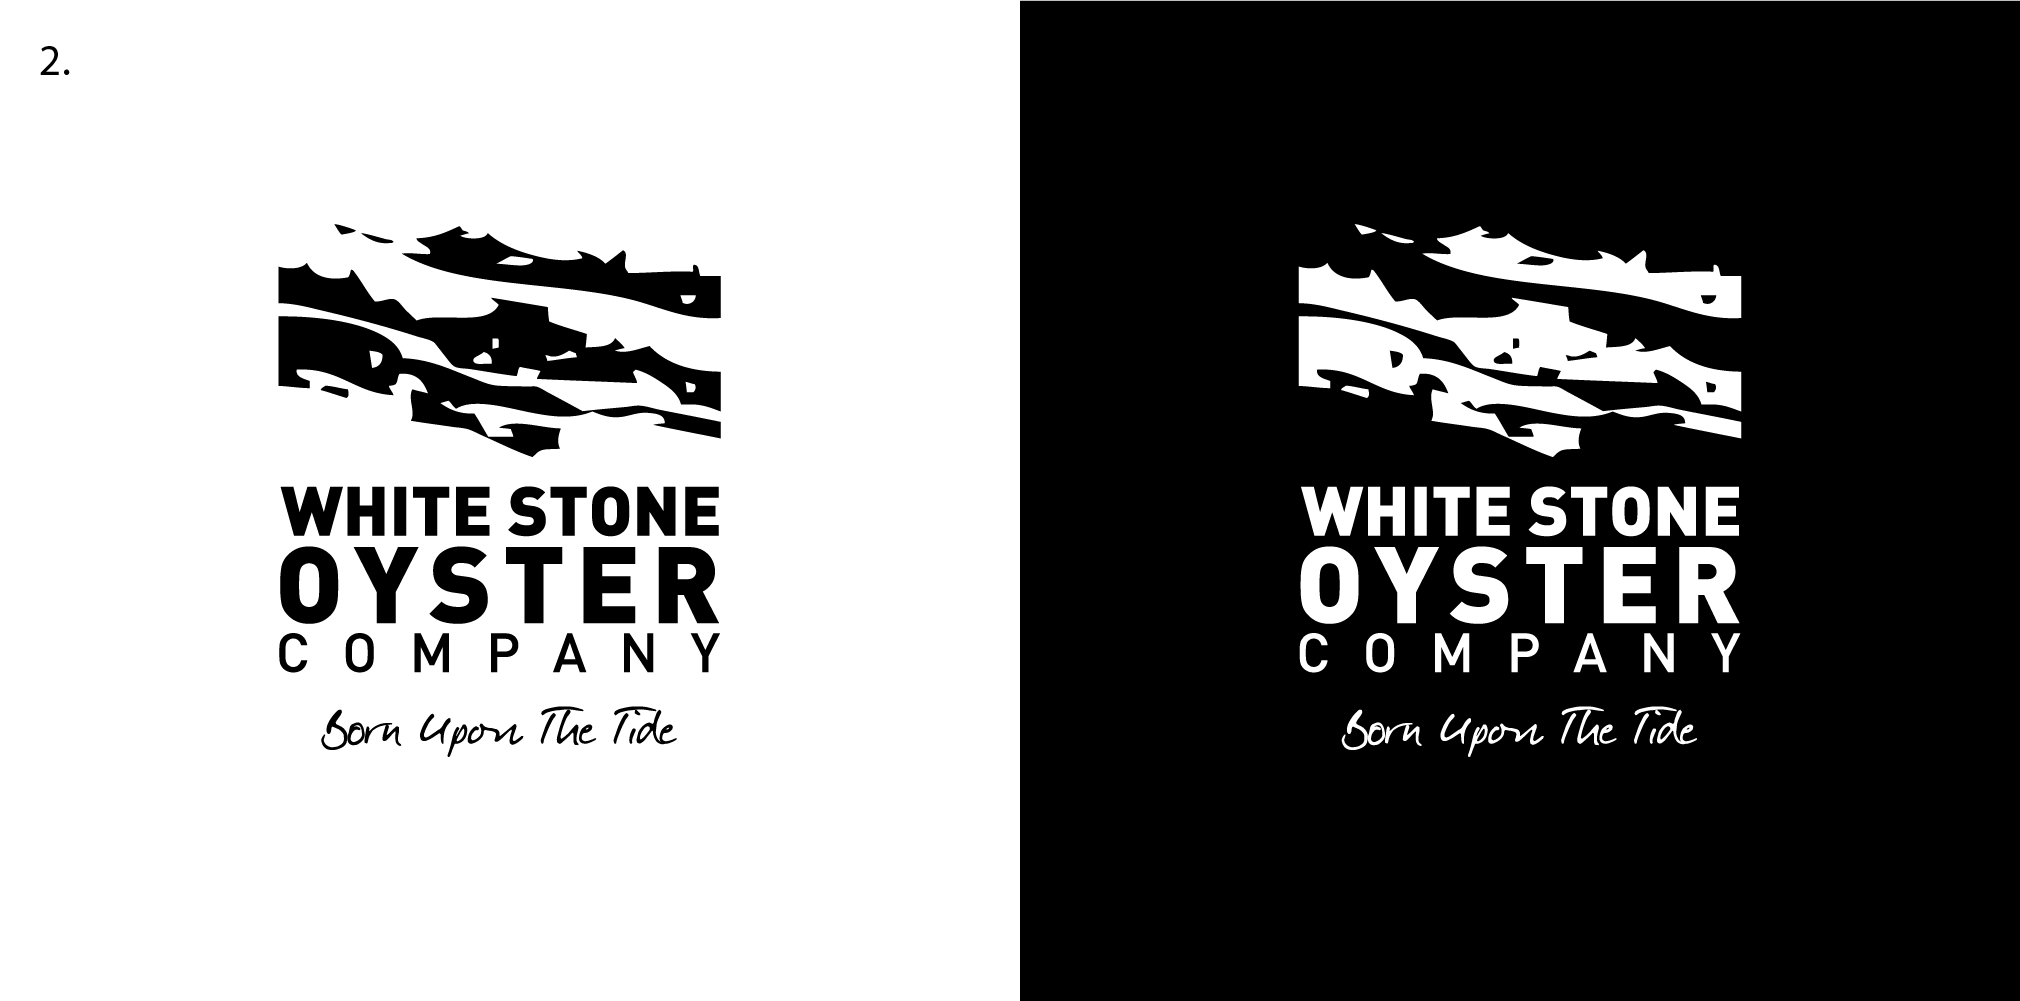 Lets turn this dirty oyster farm into a pretty pearl! ; )